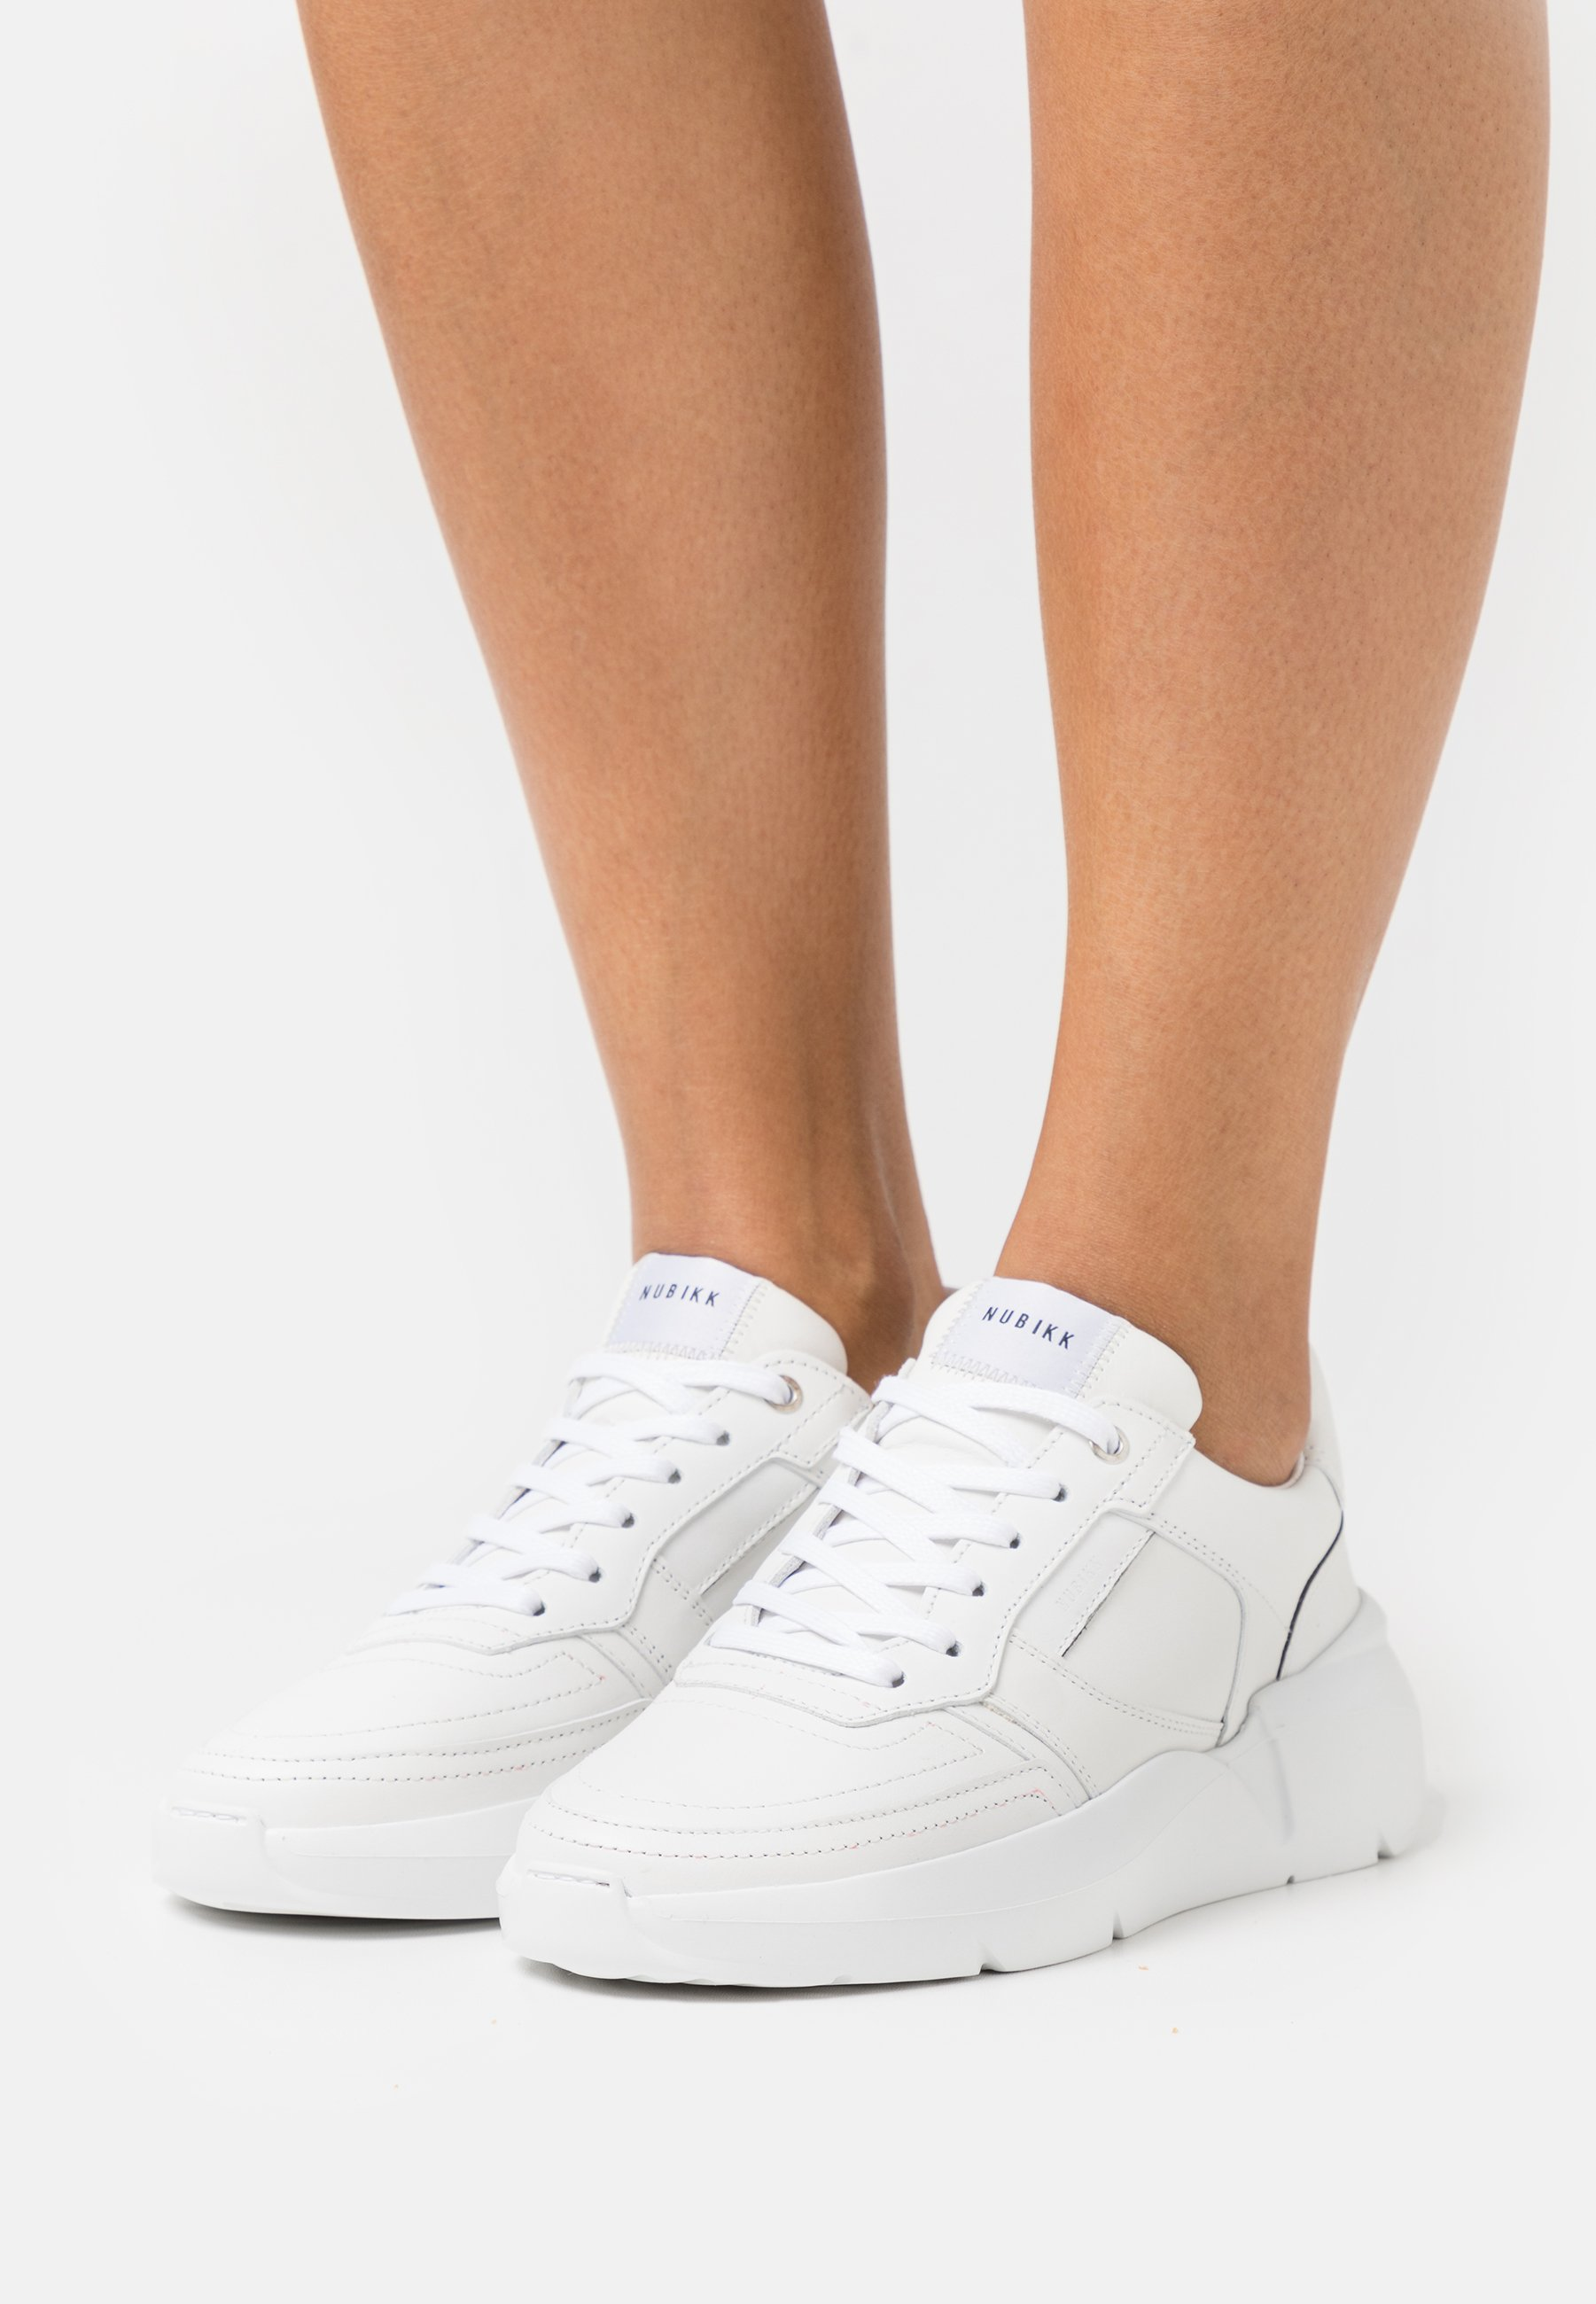 Donna LUCY MAY - Sneakers basse - white